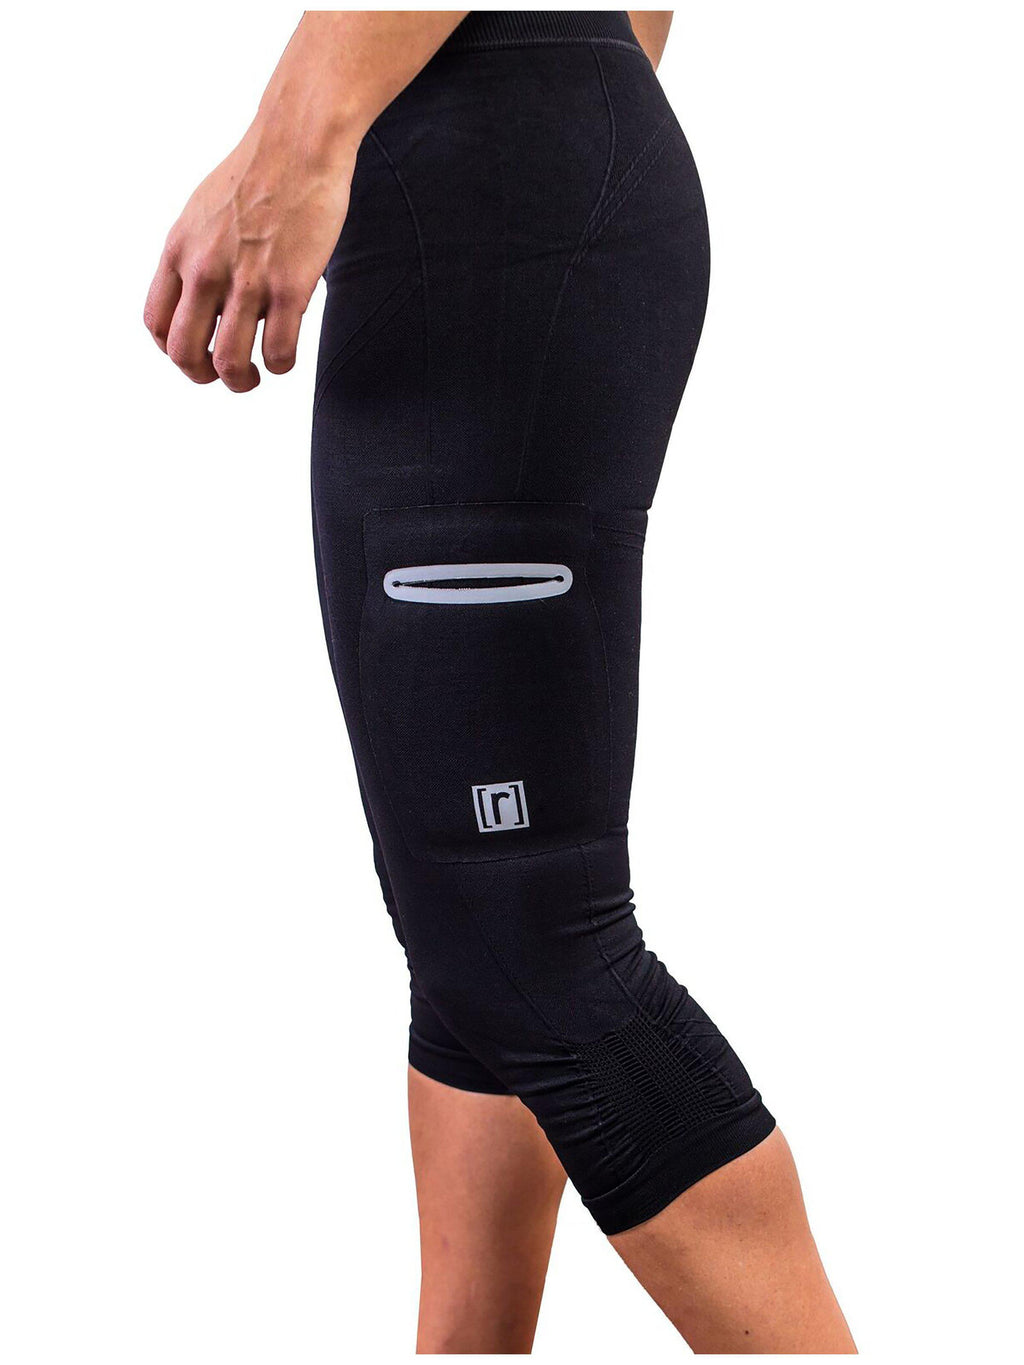 Black compression pant with patented fully seamless front and pockets. Side view.